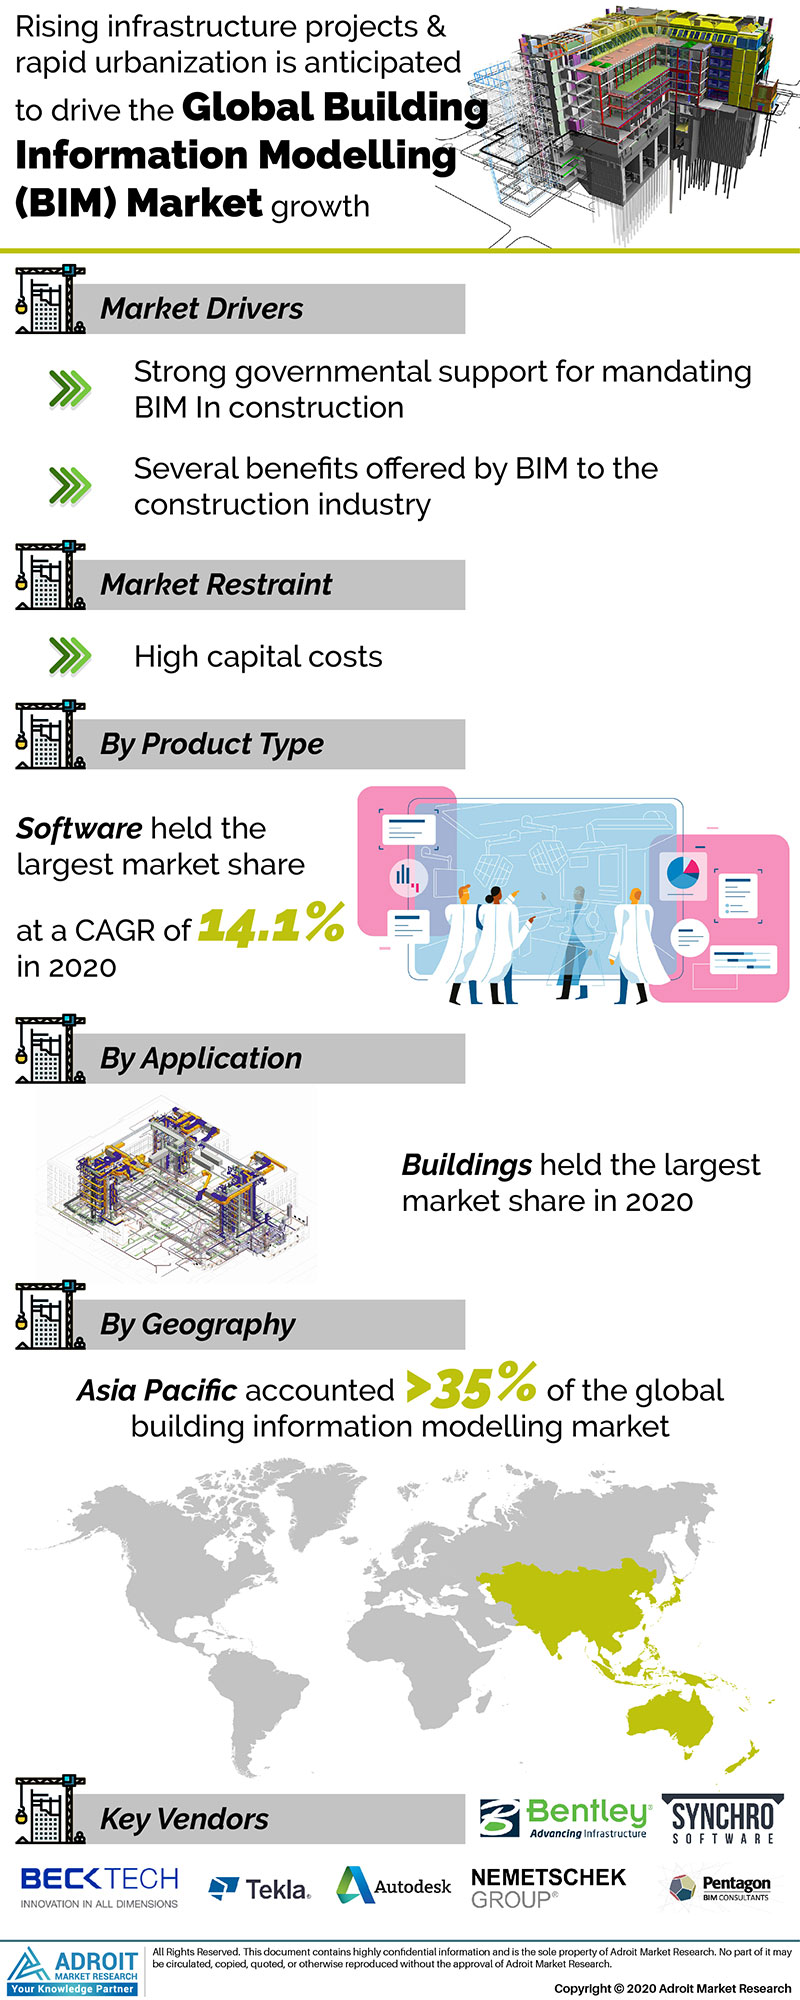 Global Building Information Modeling Market Size 2017 By Type, Device, Region and Forecast 2018 to 2025